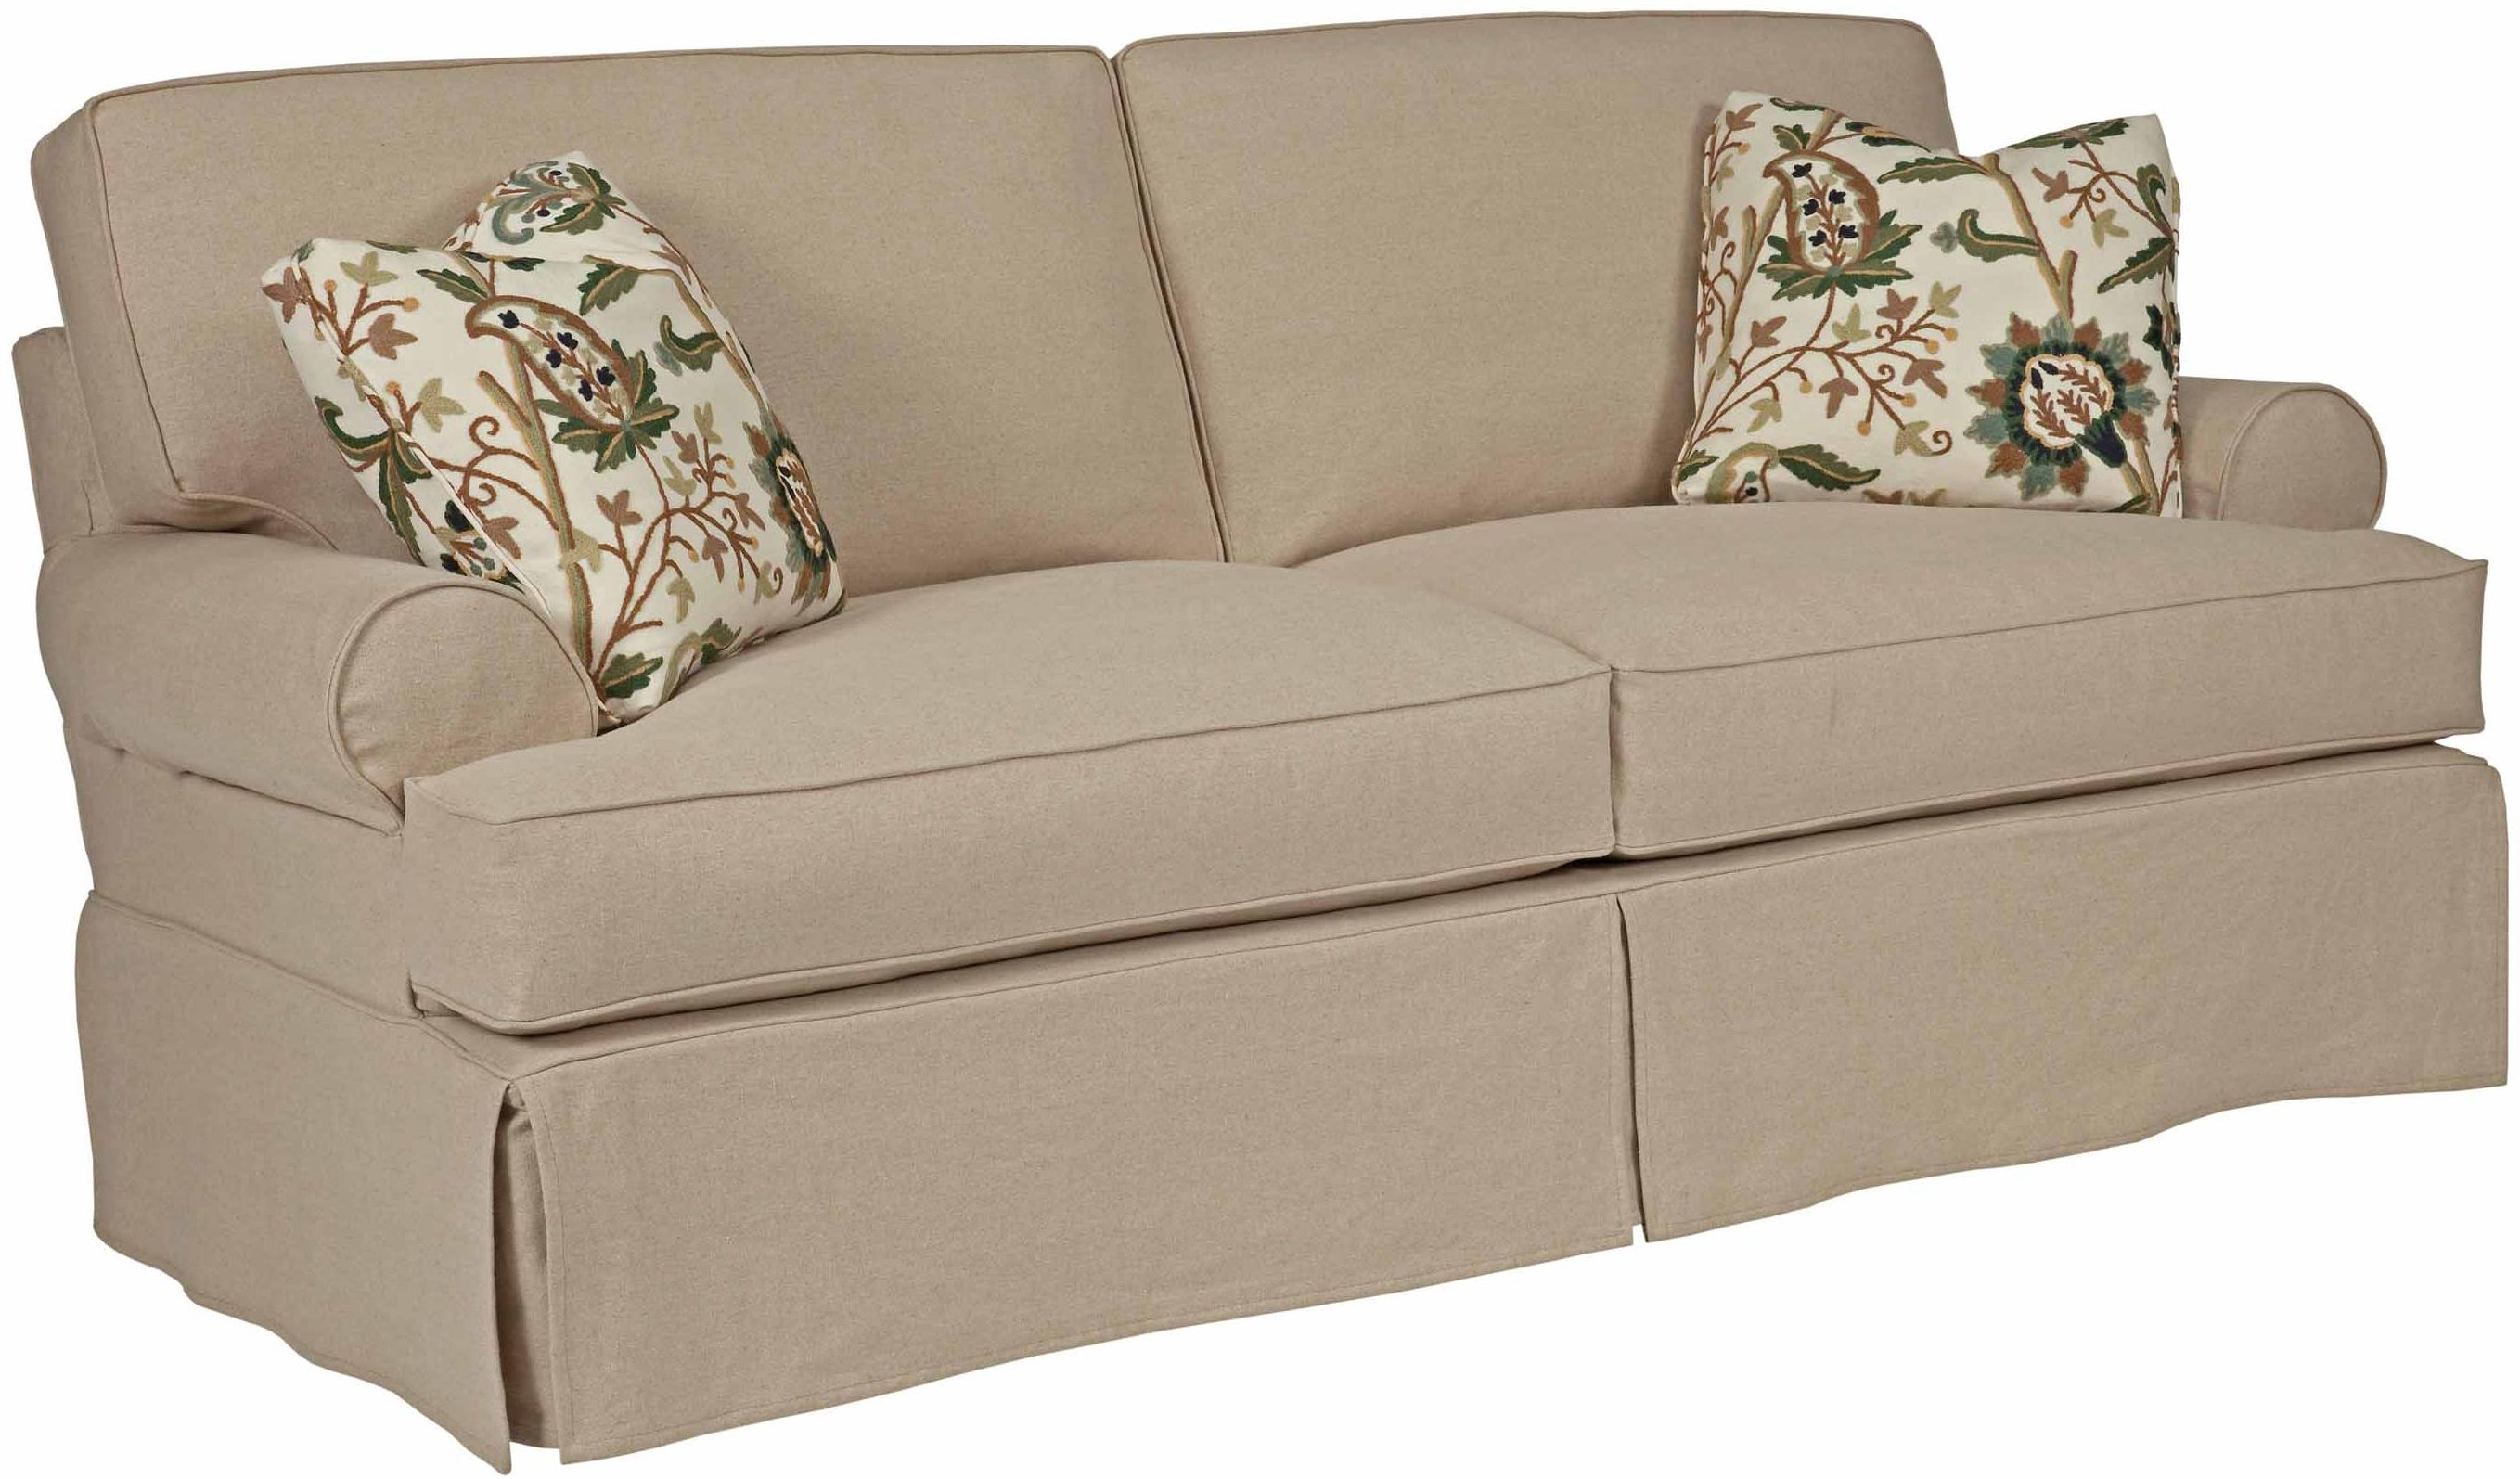 Furniture Creates Clean Foundation That Complements Decorating With Slipcovers For Sofas And Chairs (Image 4 of 15)